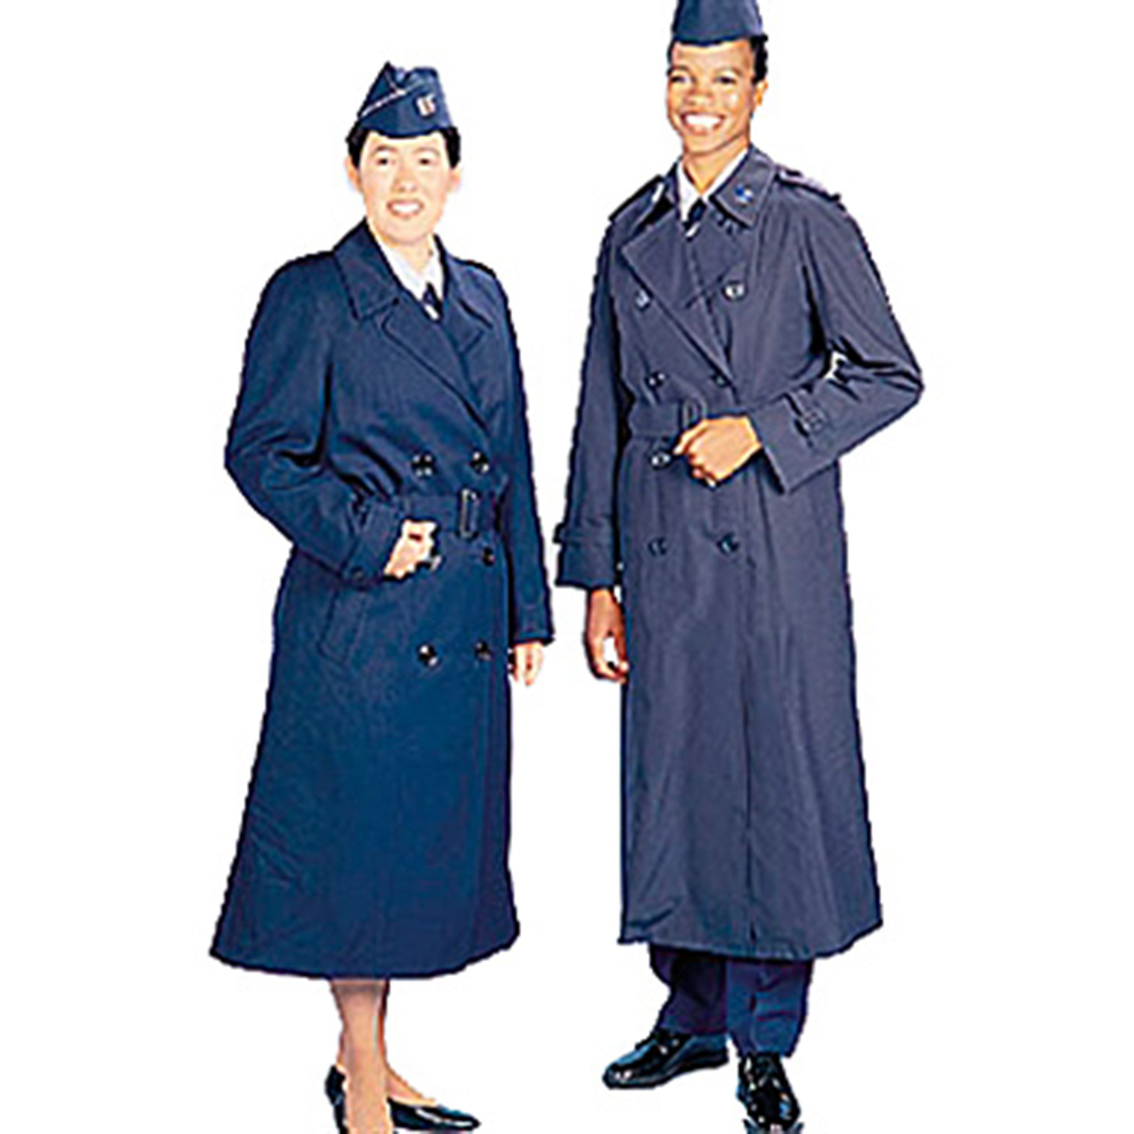 Innovative Book Of Womens Mess Dress Uniform Air Force In Canada By William U2013 Playzoa.com